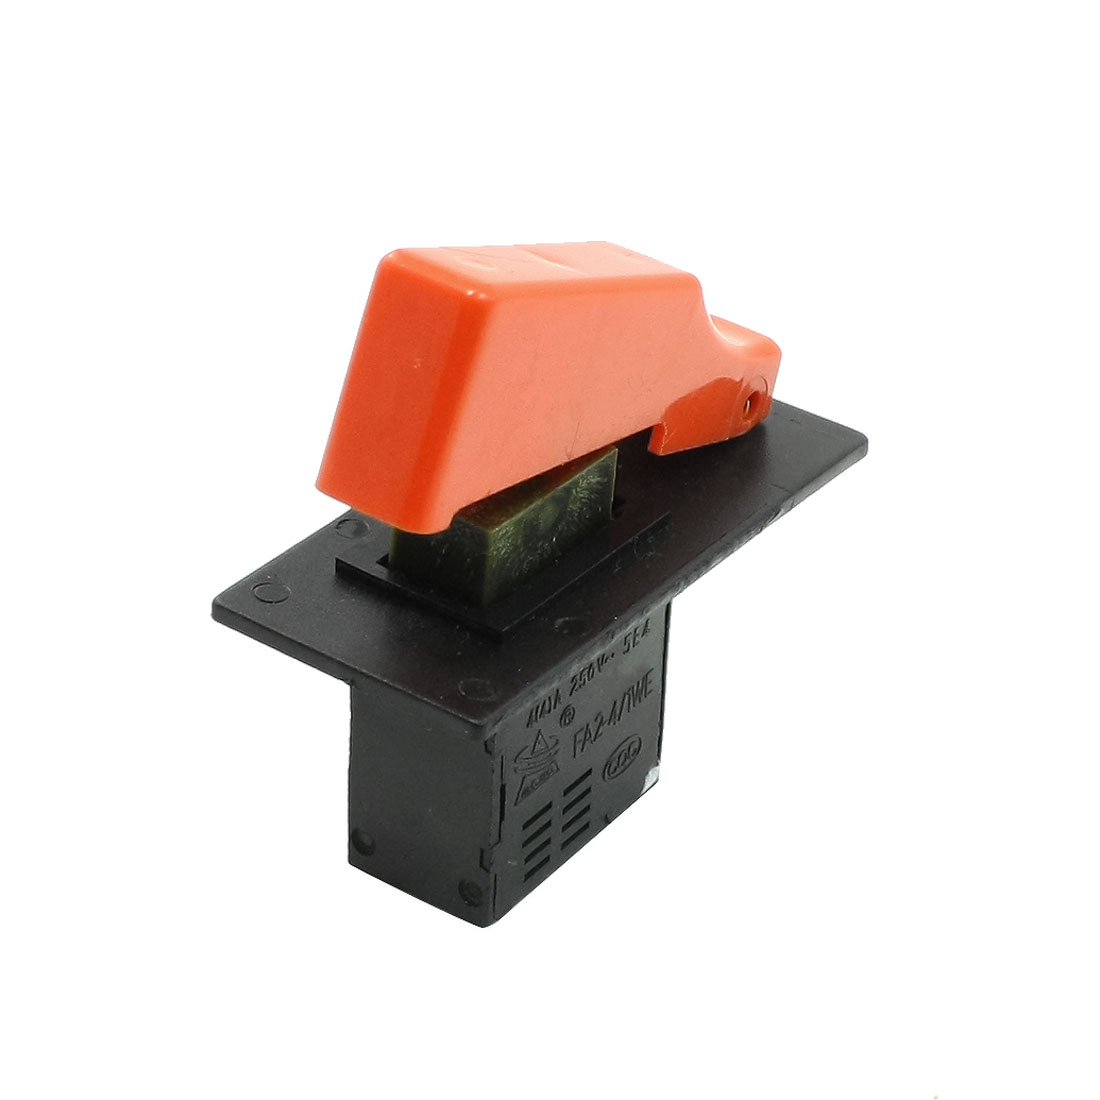 Replacing AC 250V 4A 5E4 Trigger Switch 4 Terminals for Electric Drill